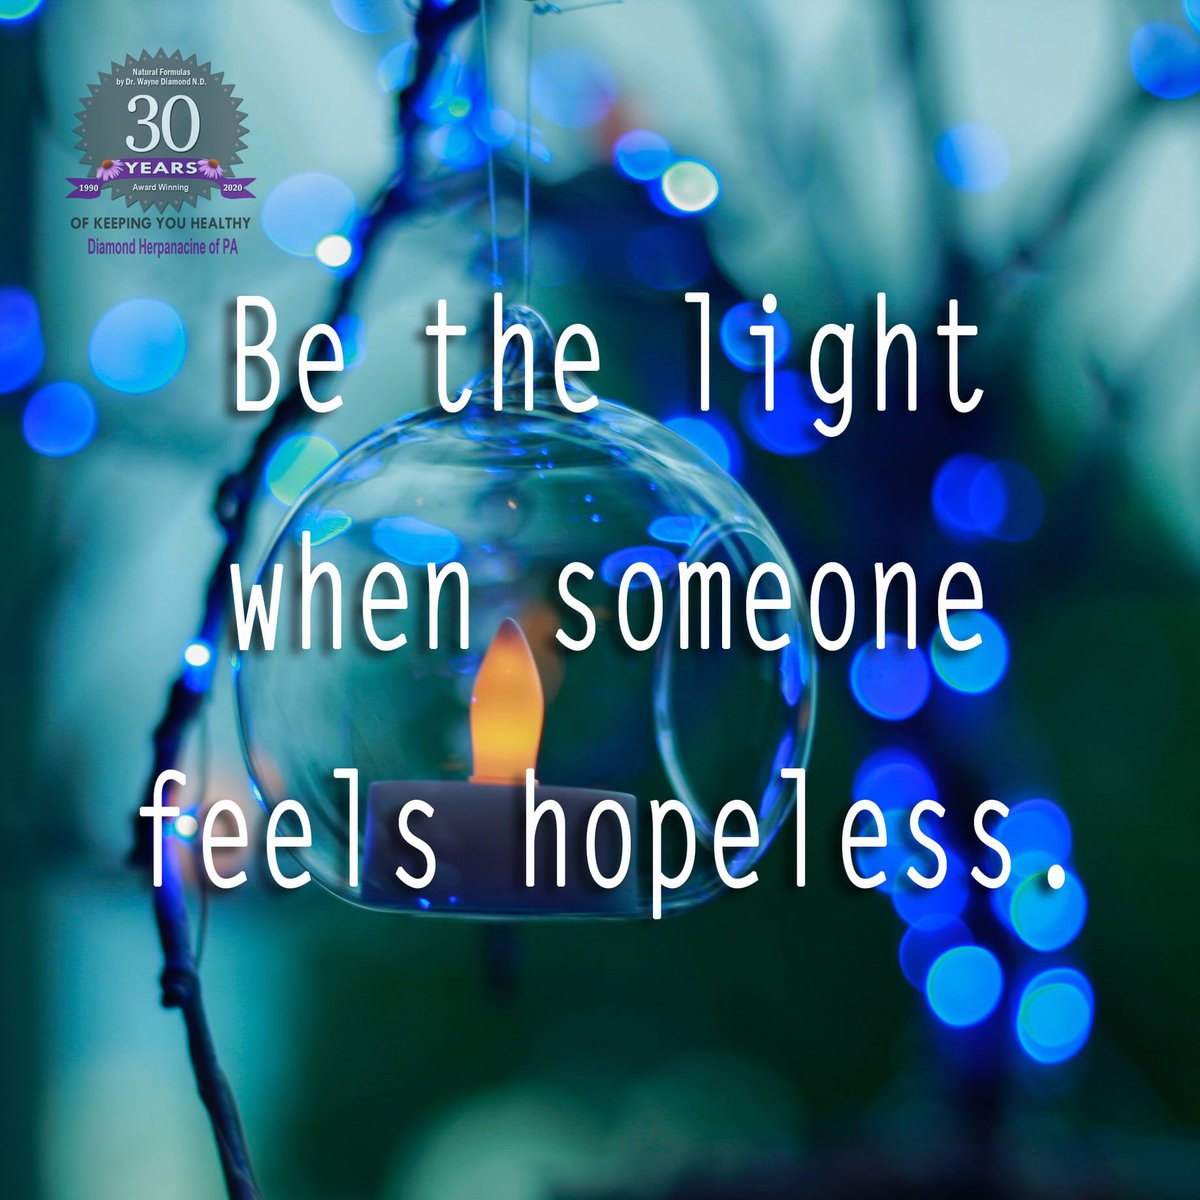 Be the light when someone feels hopeless. #inspire https://t.co/VBWZ2dd82L